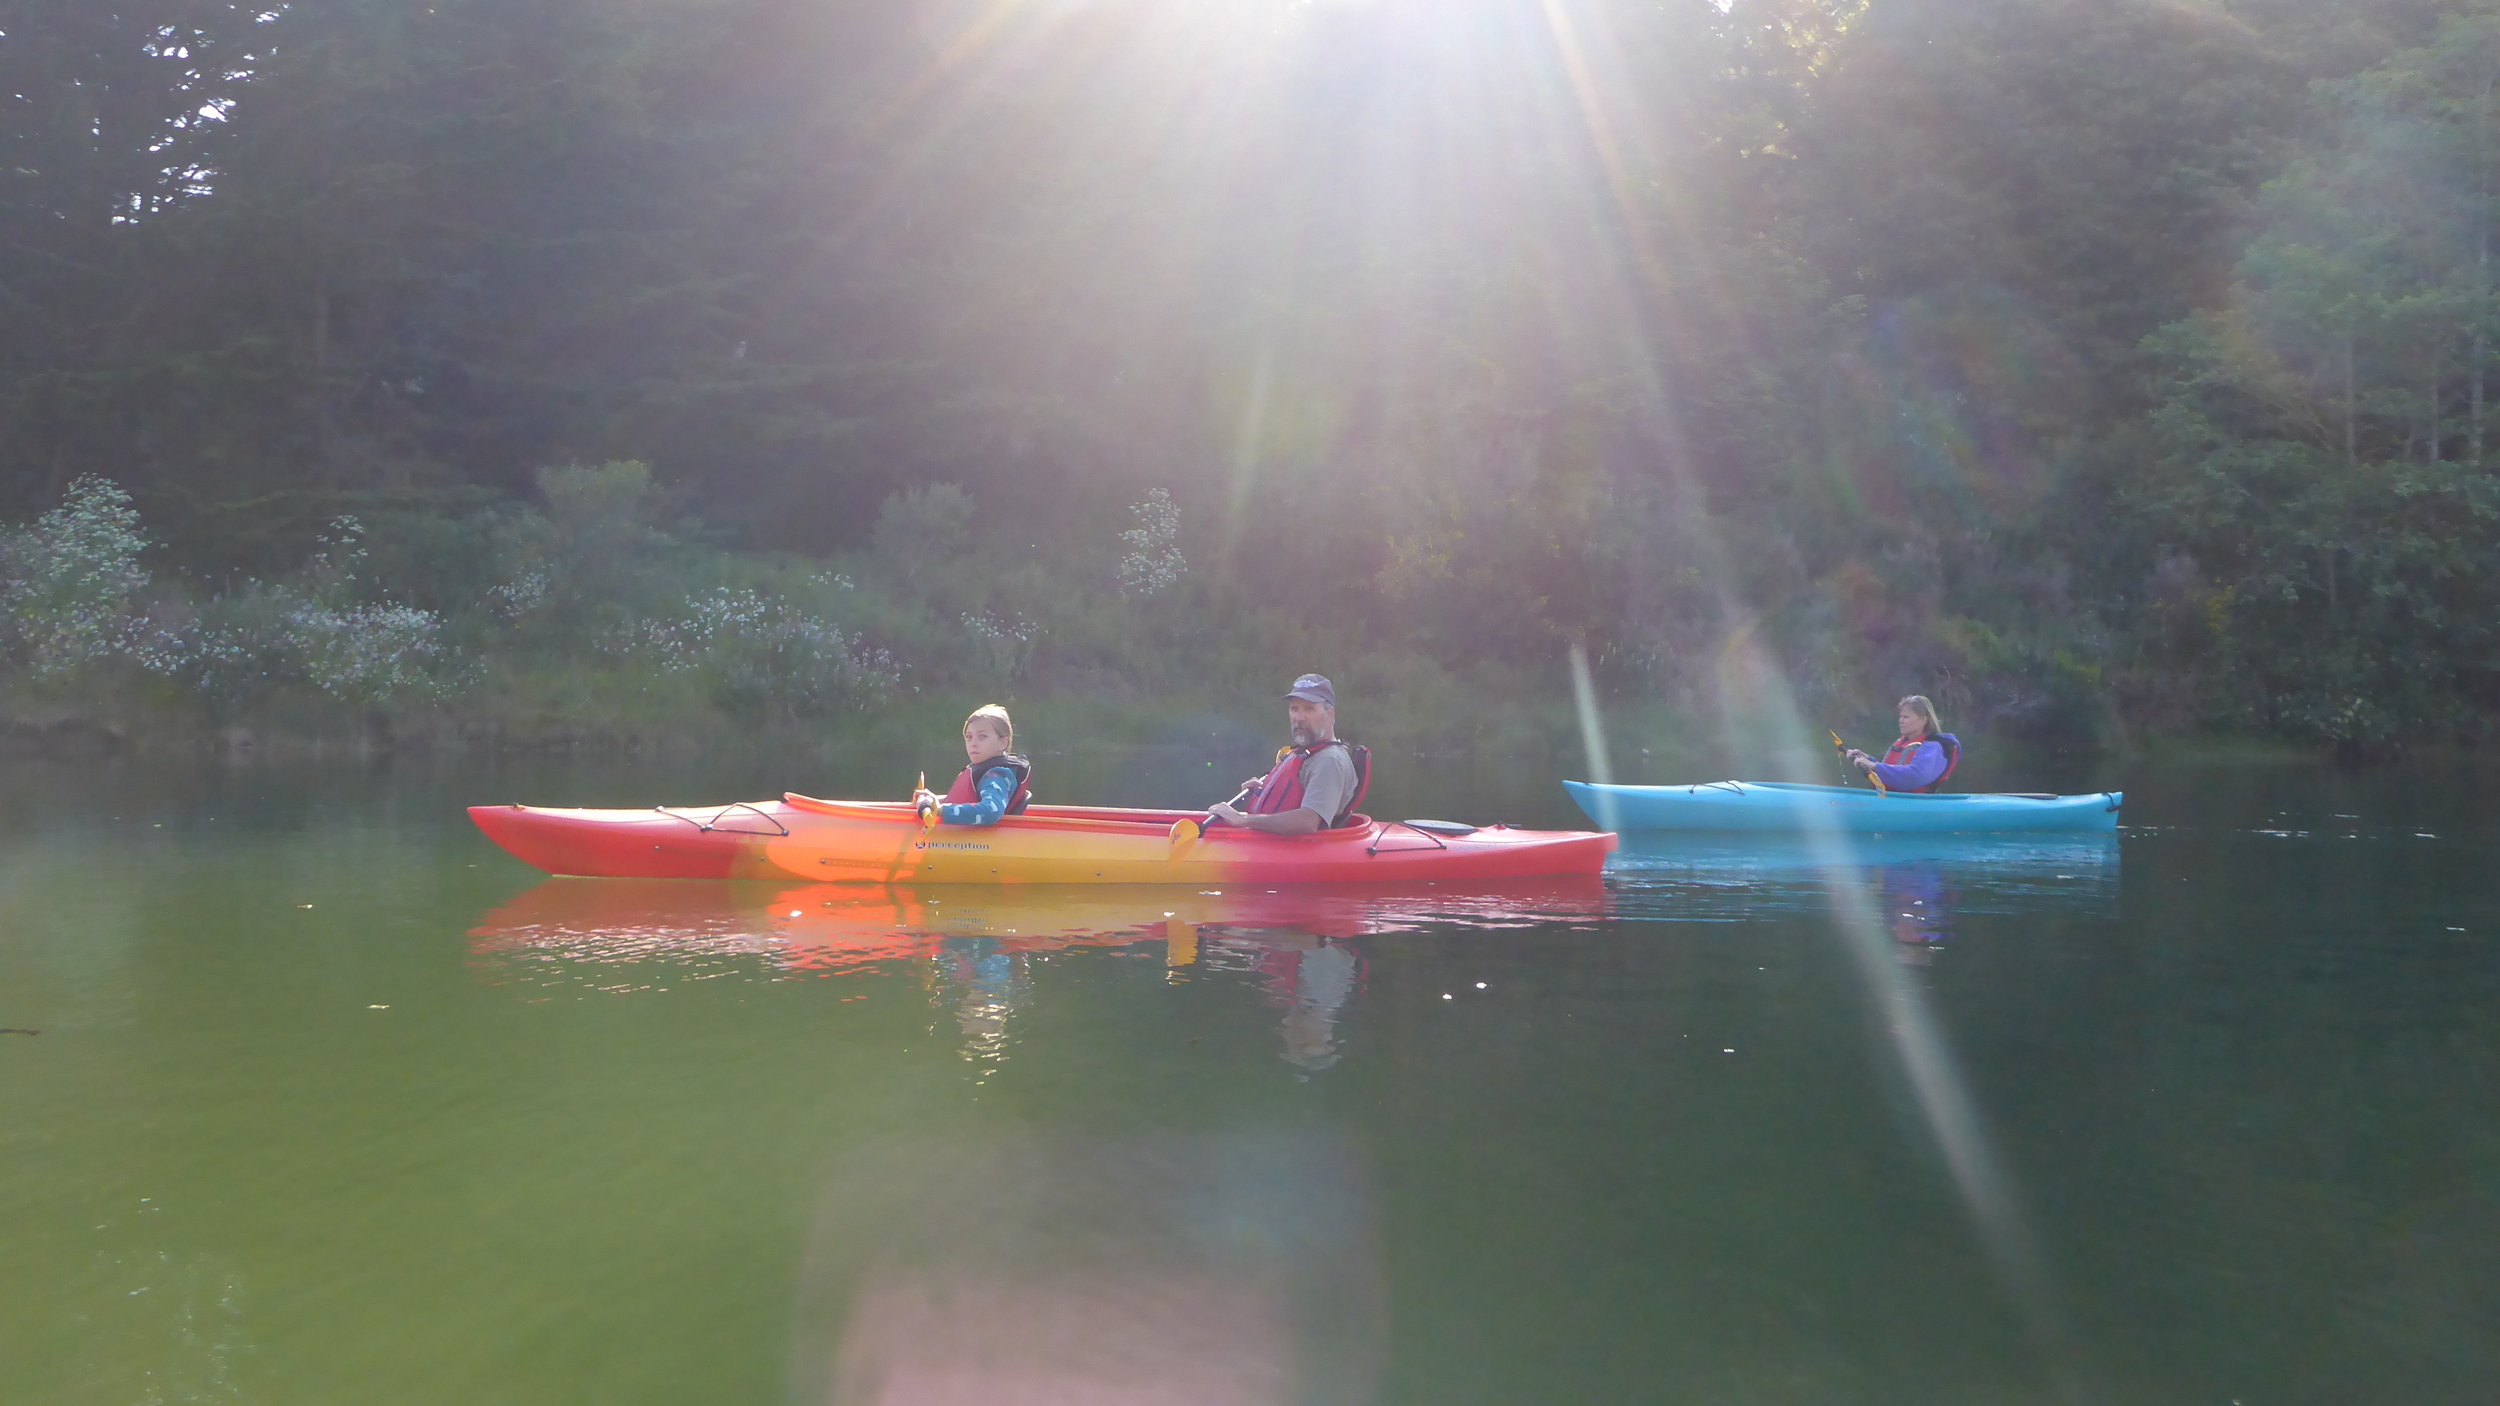 Enjoying a beautiful evening wildlife watching kayak tour on Fort Bragg's Noyo River.